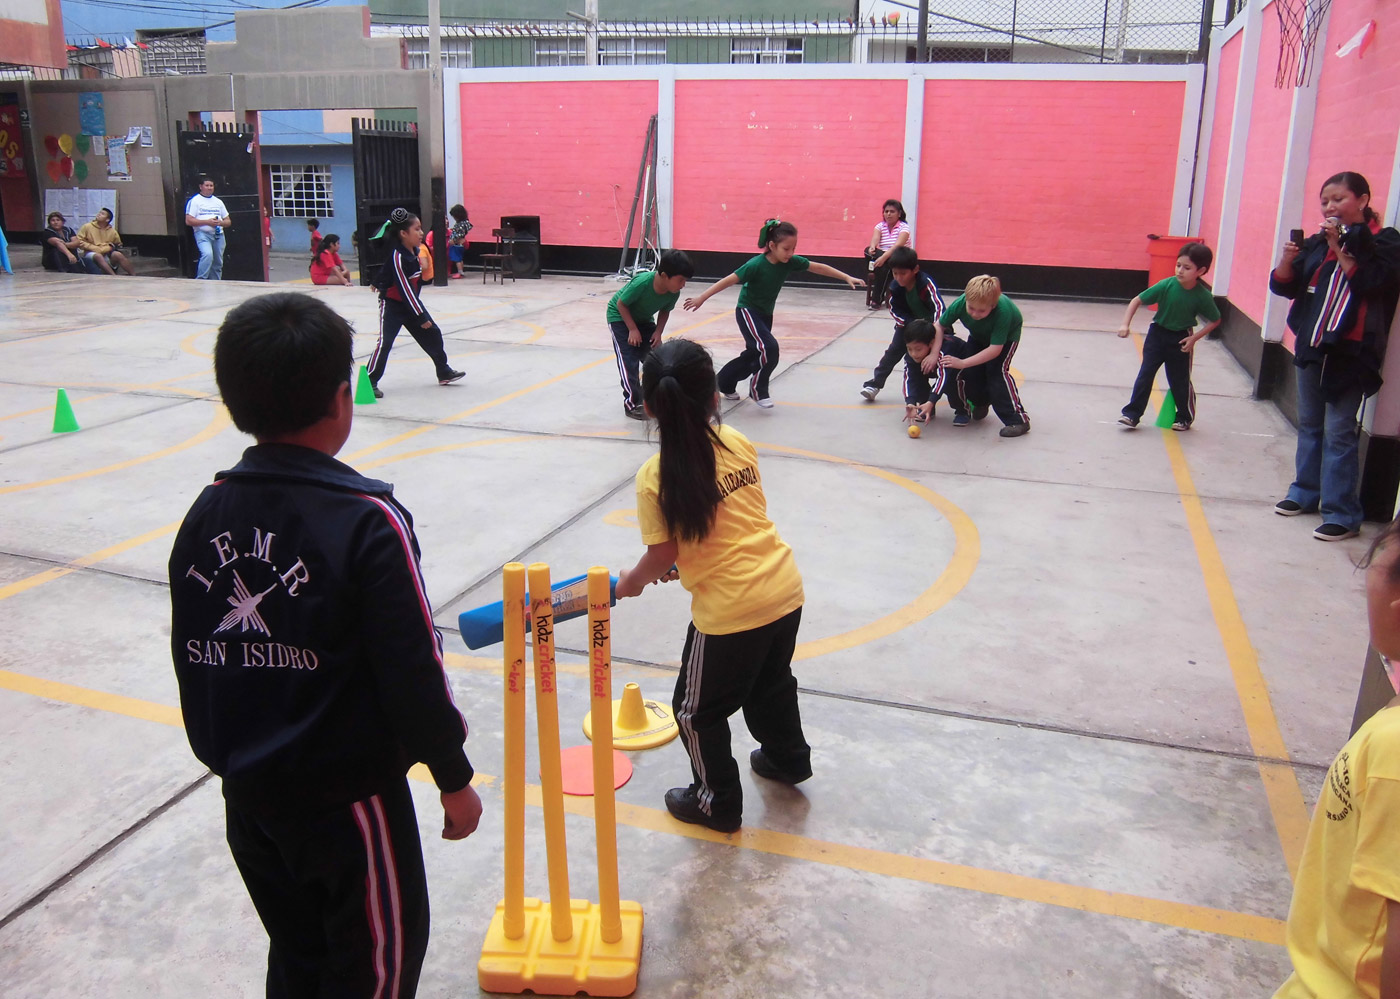 Children raised in football-mad Peru struggle to grasp cricket's more sedate pace